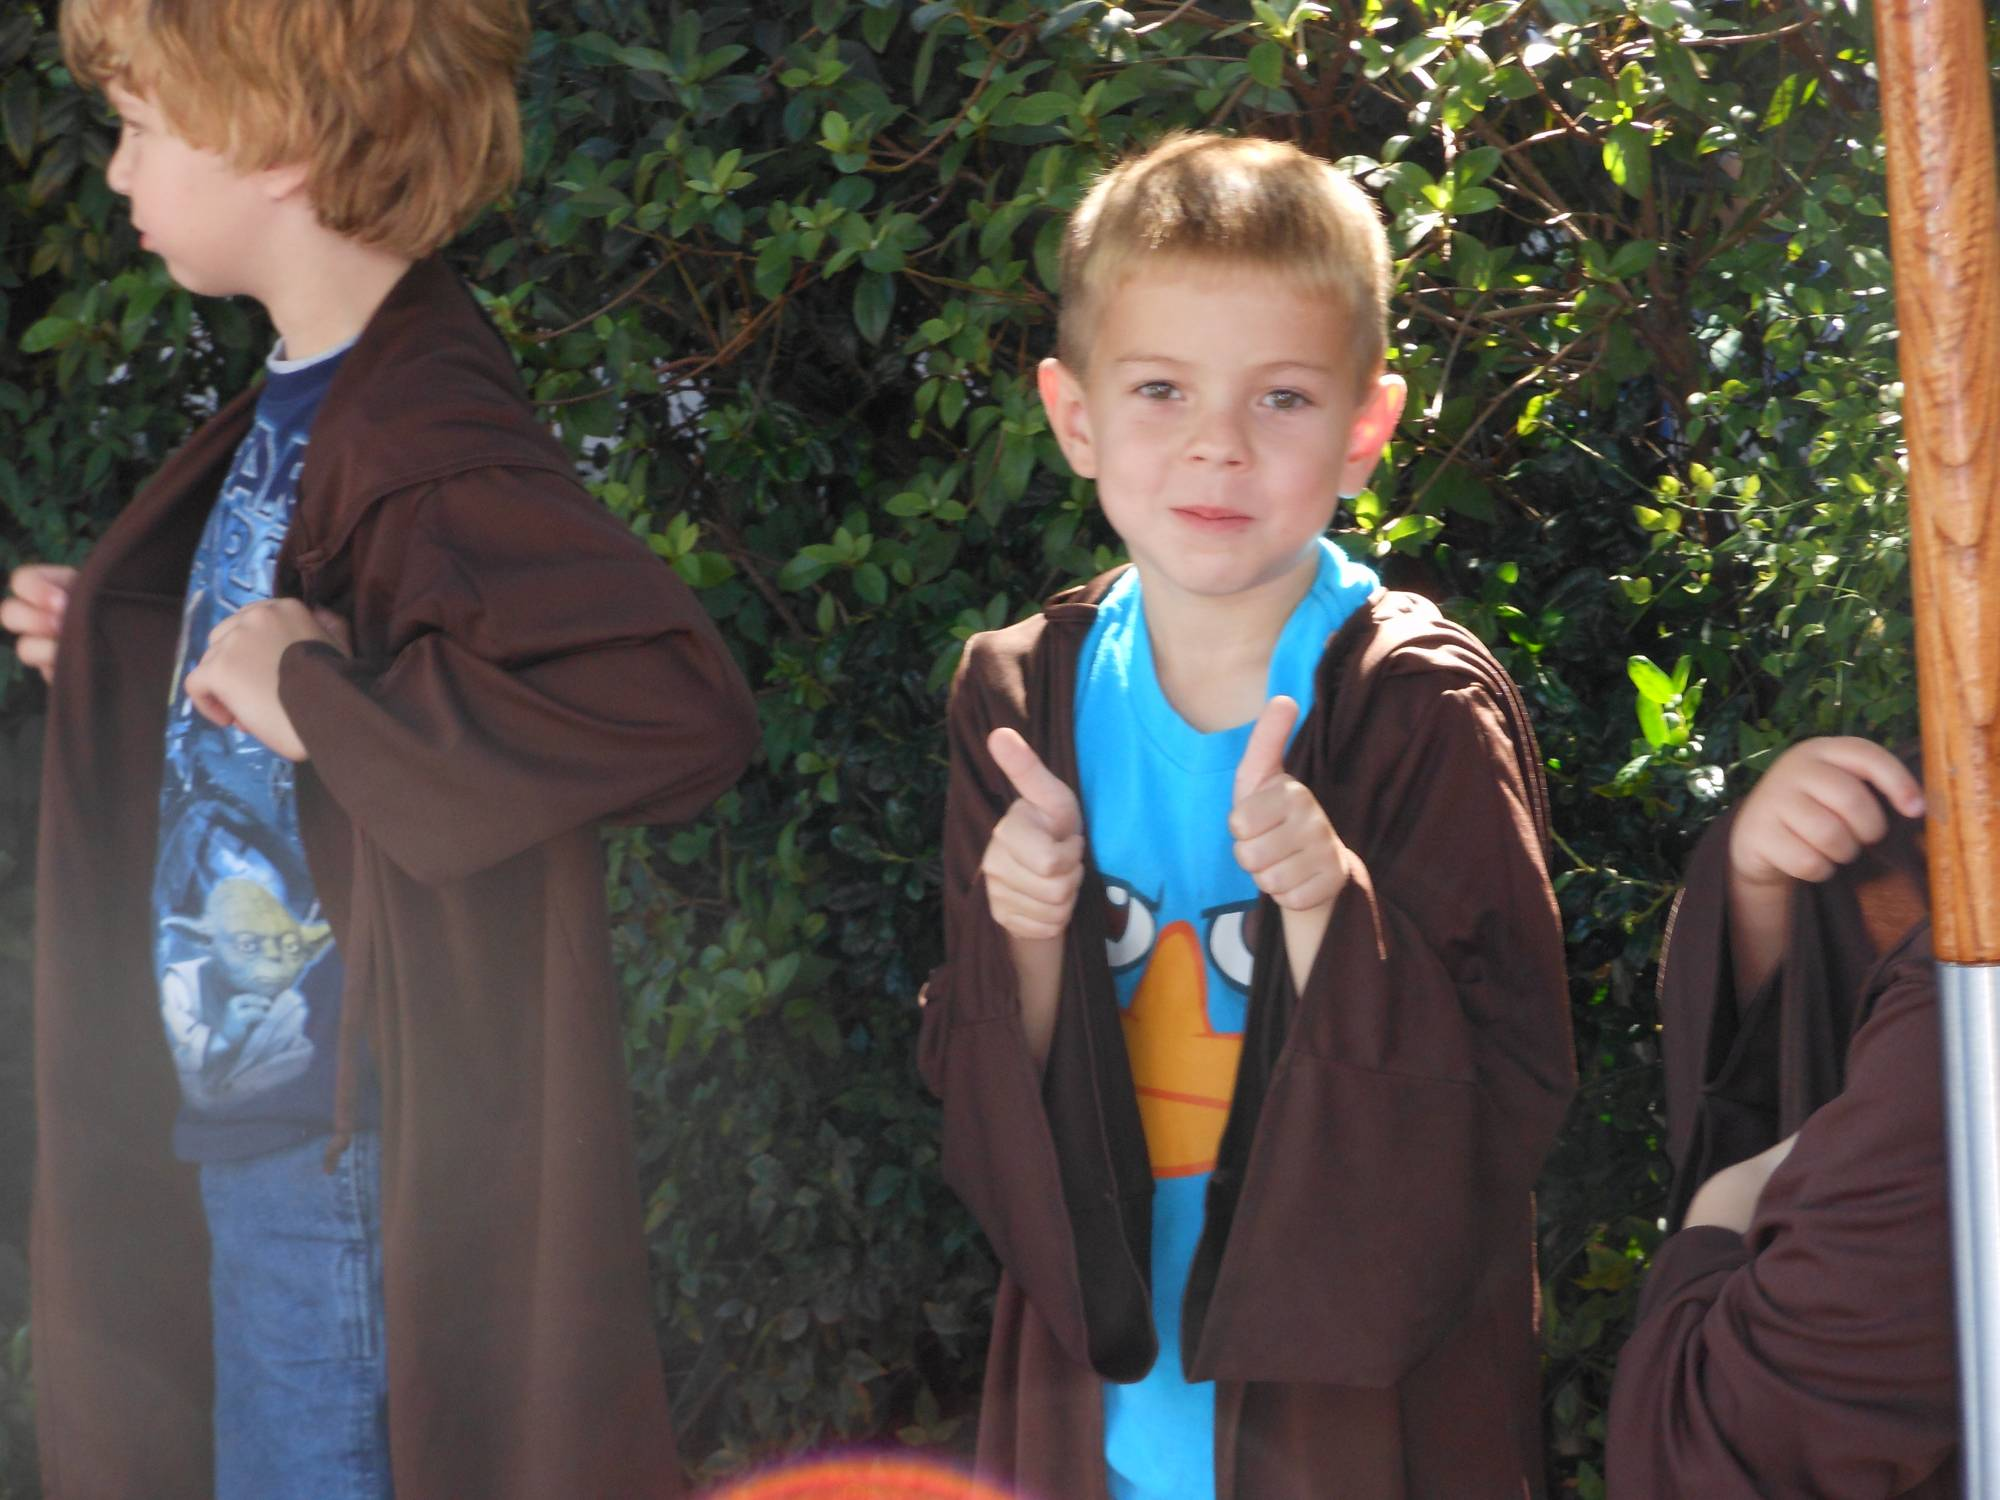 Children learn the way of the Jedi at Disney Hollywood Studios | PassPorter.com